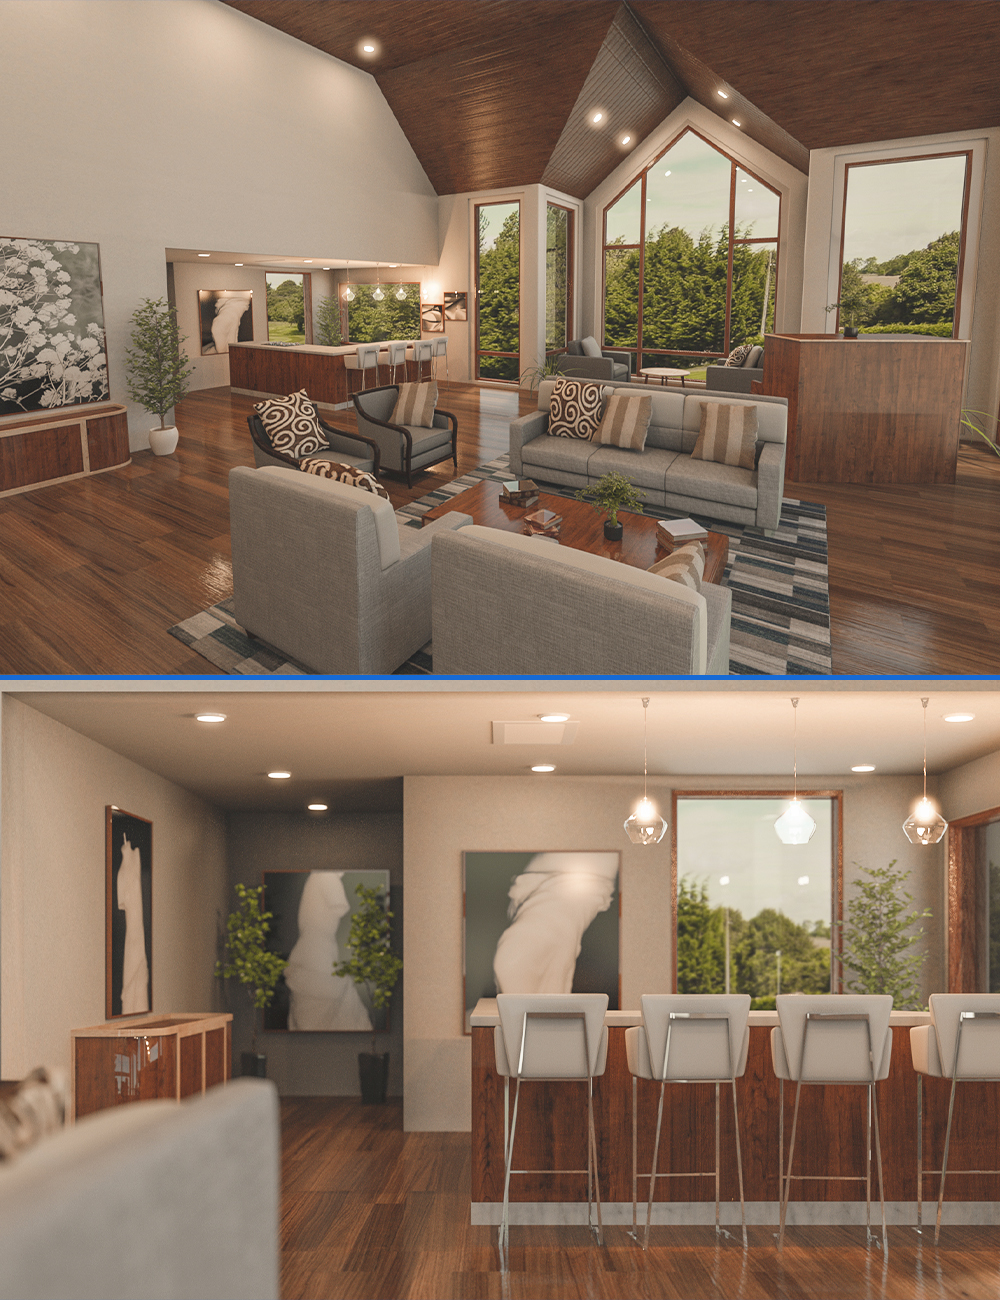 Modern Country Home by: bituka3d, 3D Models by Daz 3D